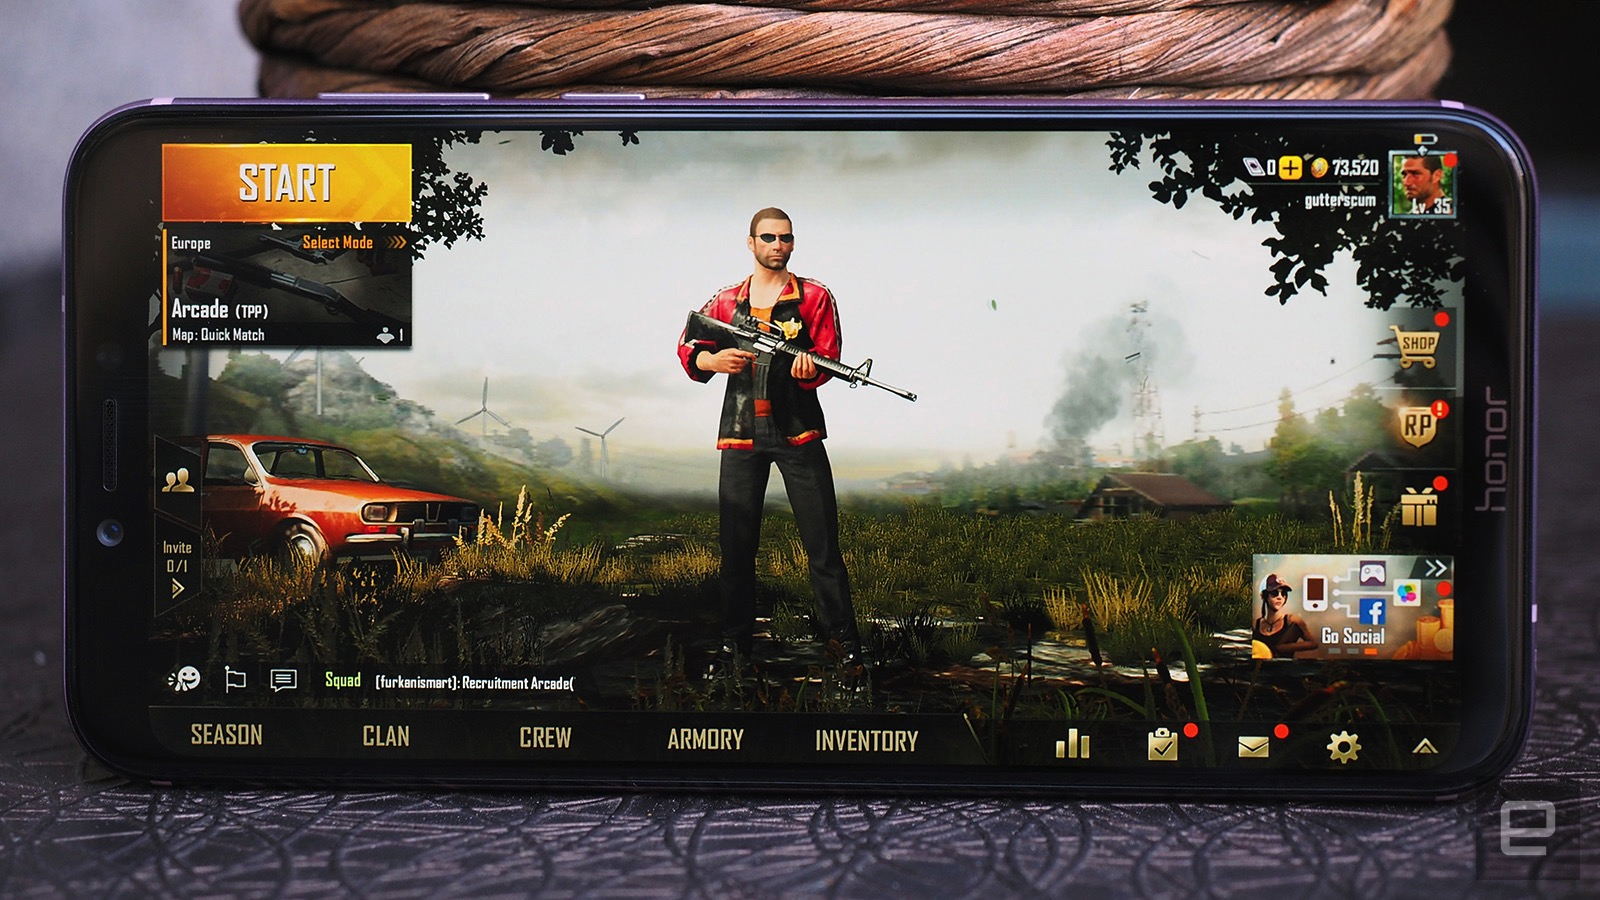 Honor's Play gaming phone is far from perfect for 'PUBG'